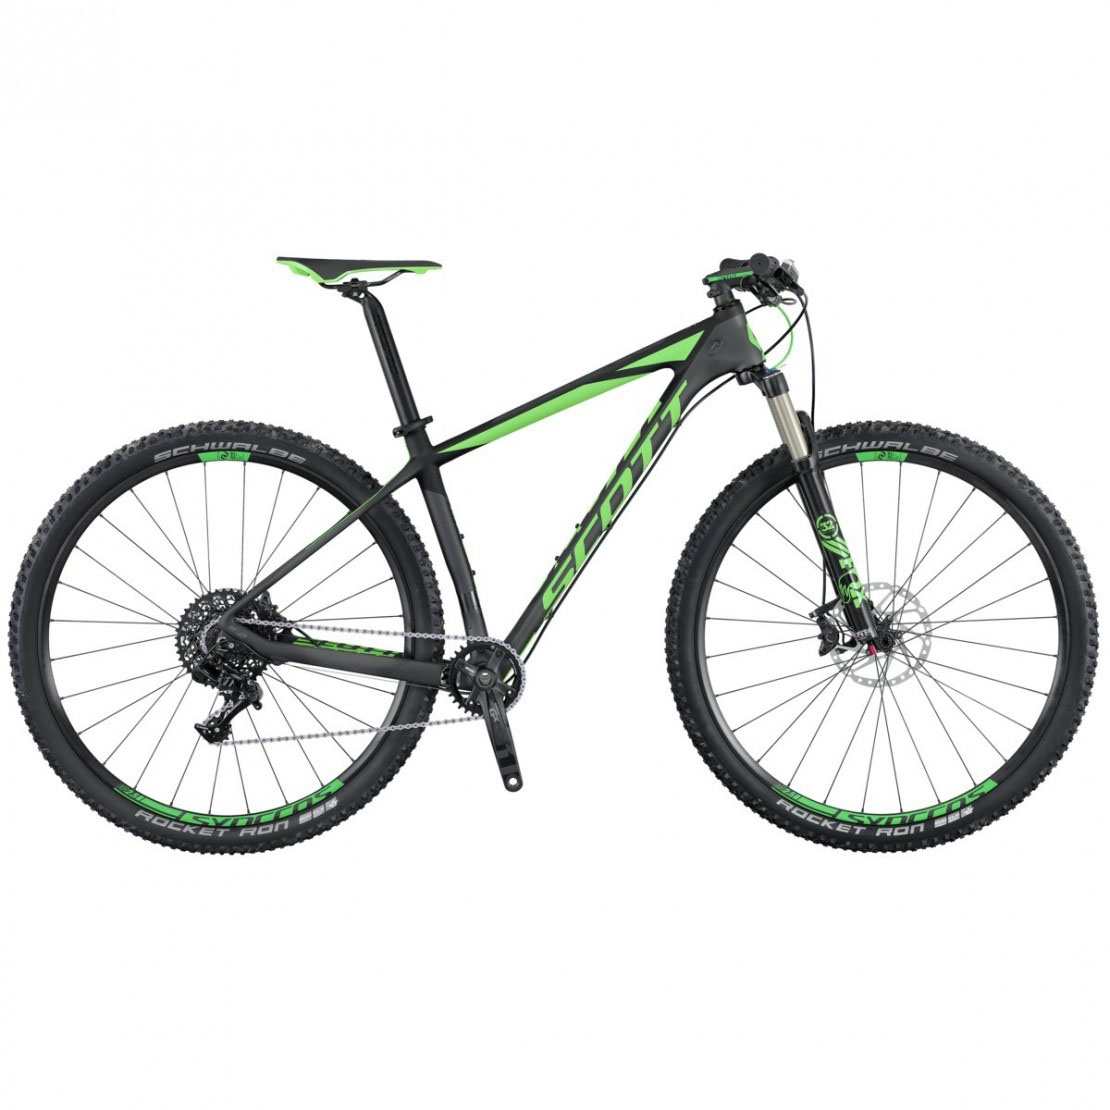 Scale 920 - 2016 29er Hardtail Mountain Bike